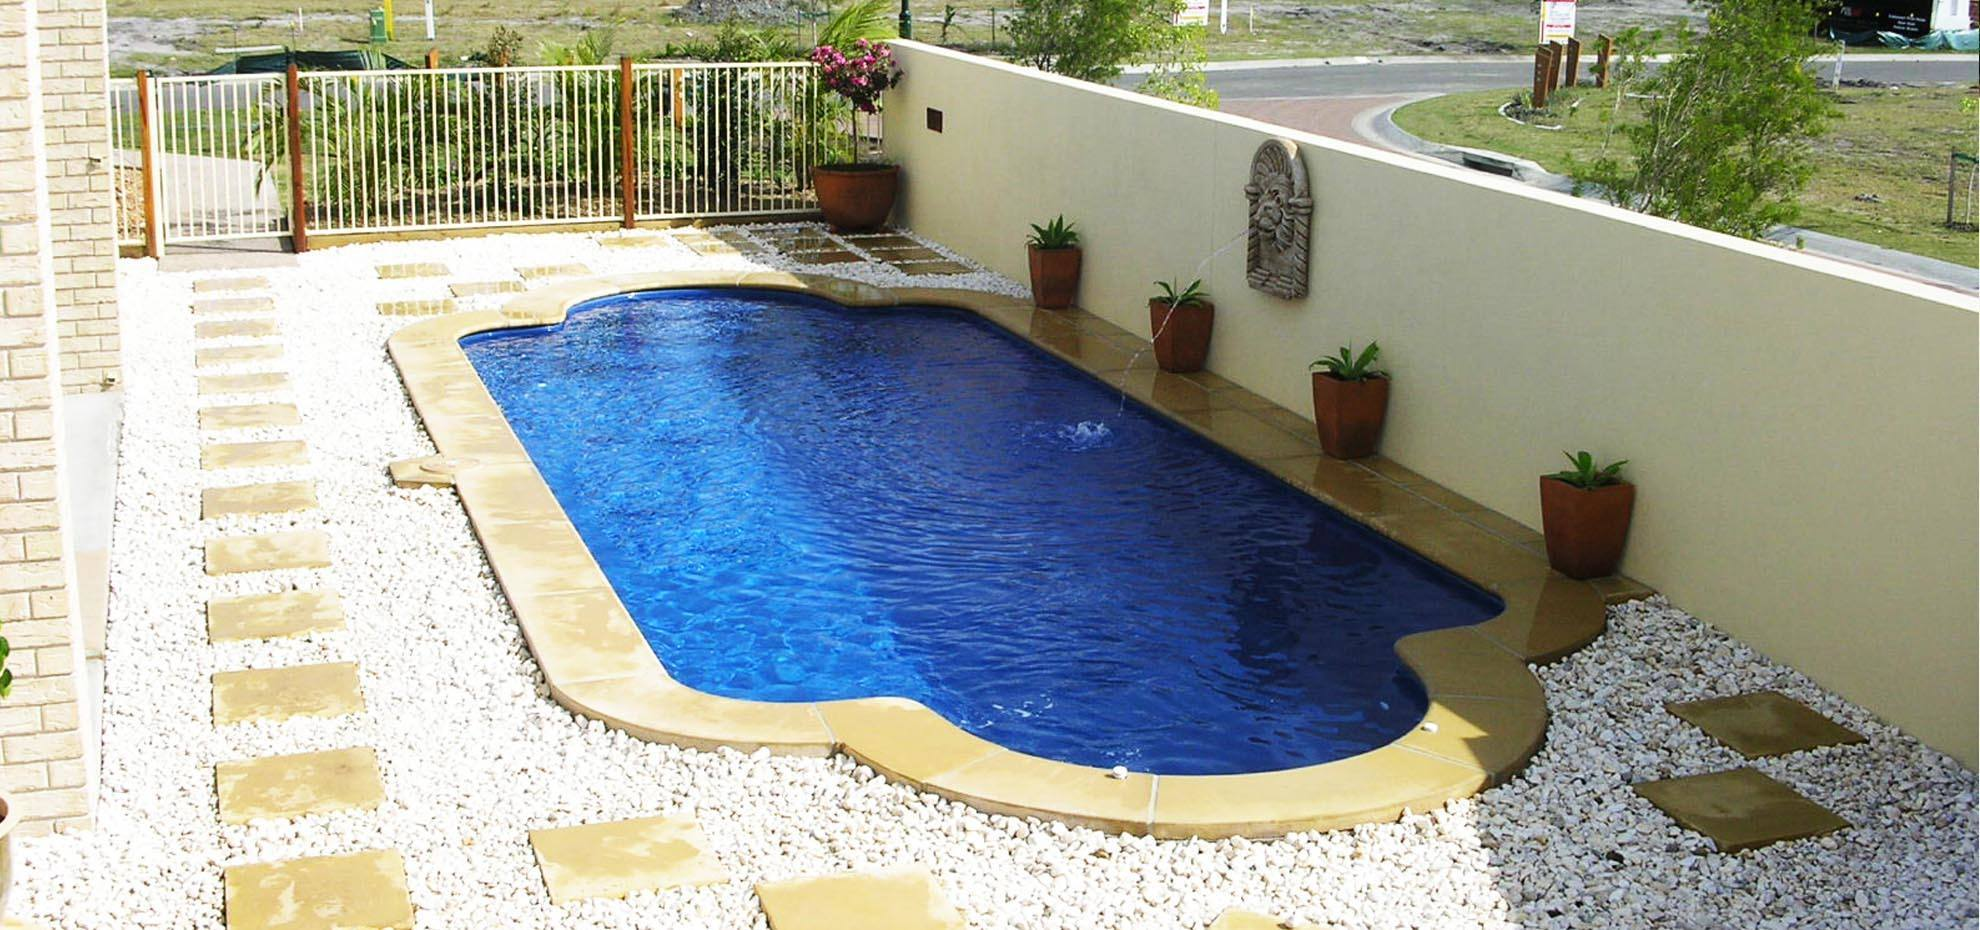 Roman Fibreglass pool with water feature and coping by Leisure Pools